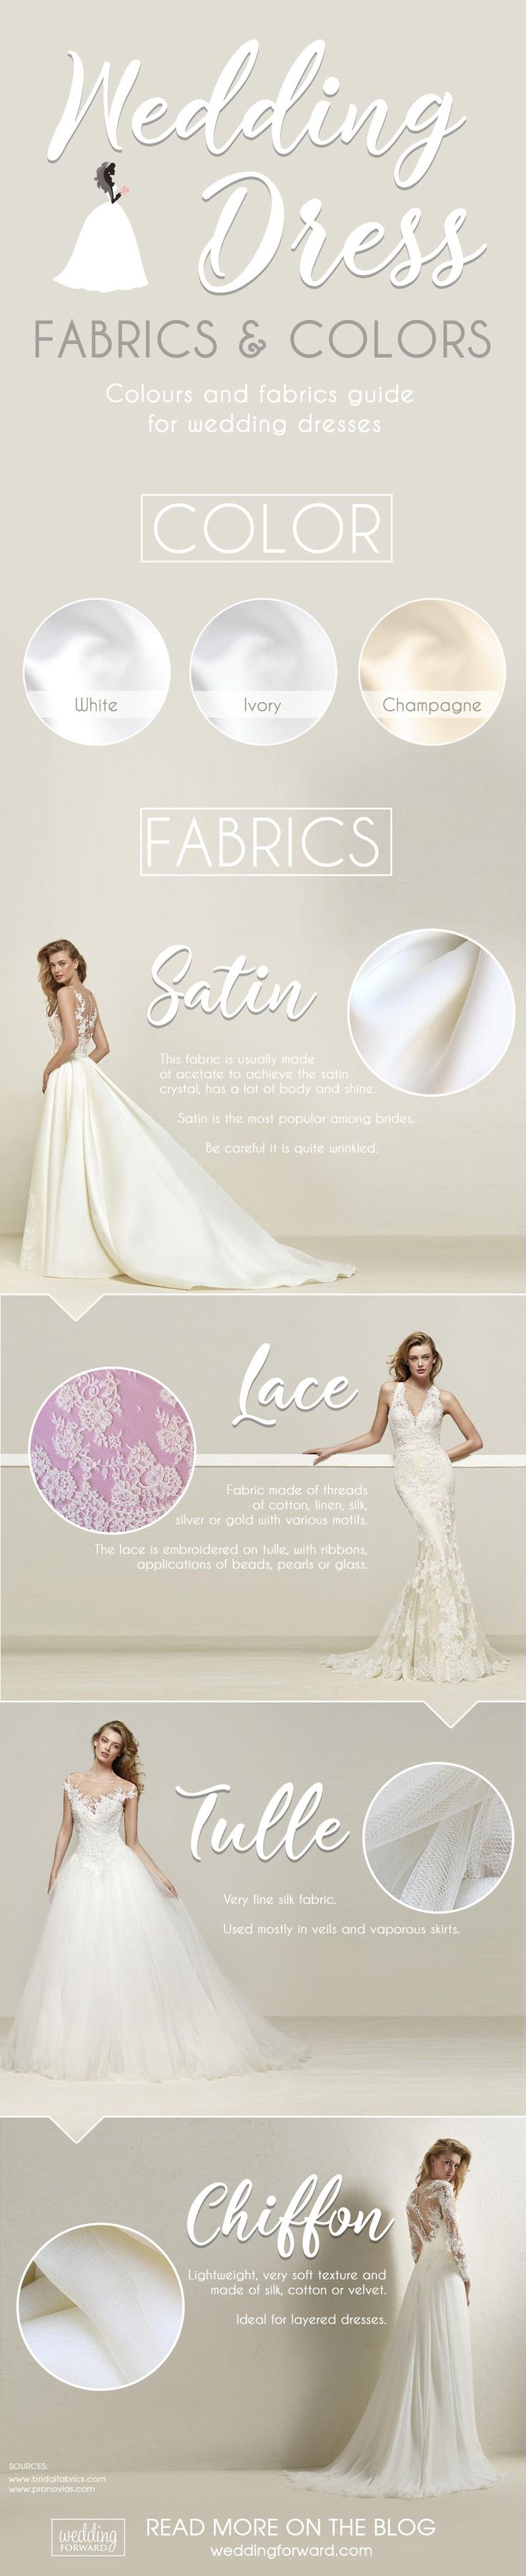 Best 25 wedding dress fabric ideas on pinterest next dresses 12 wedding dress infographics to make your shopping easier ombrellifo Choice Image